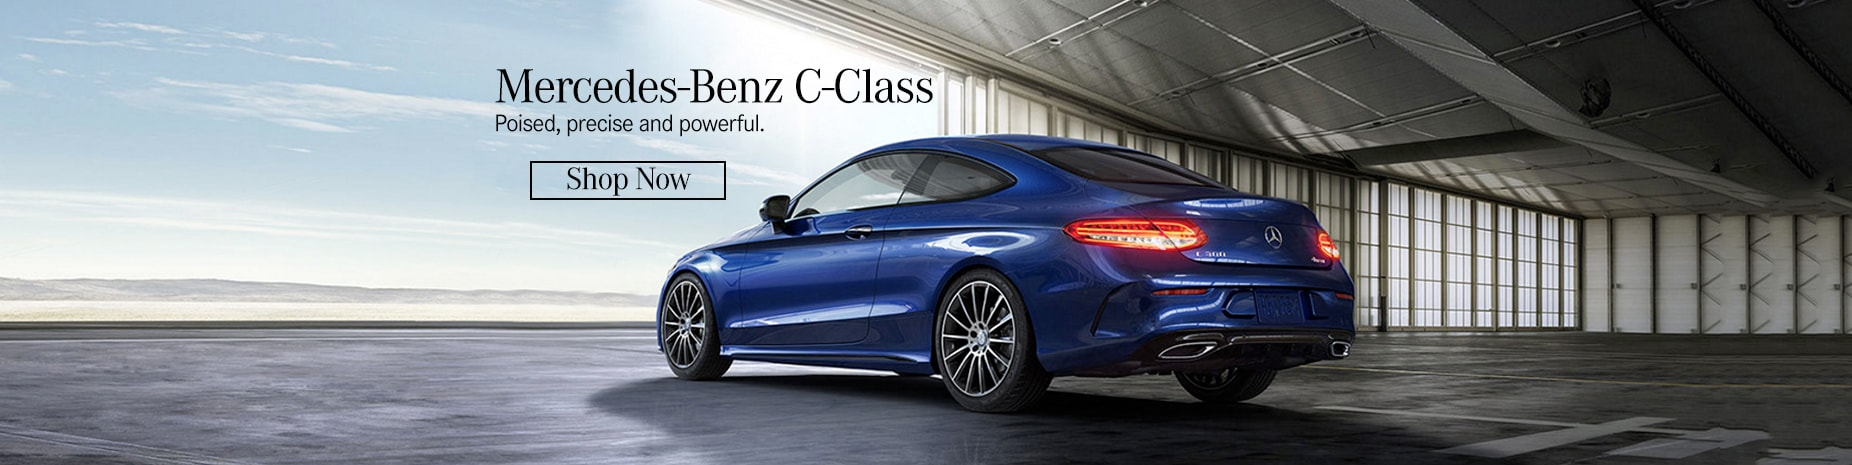 2017 mercedes benz c class 2017 mercedes c class for sale for Mercedes benz in tampa